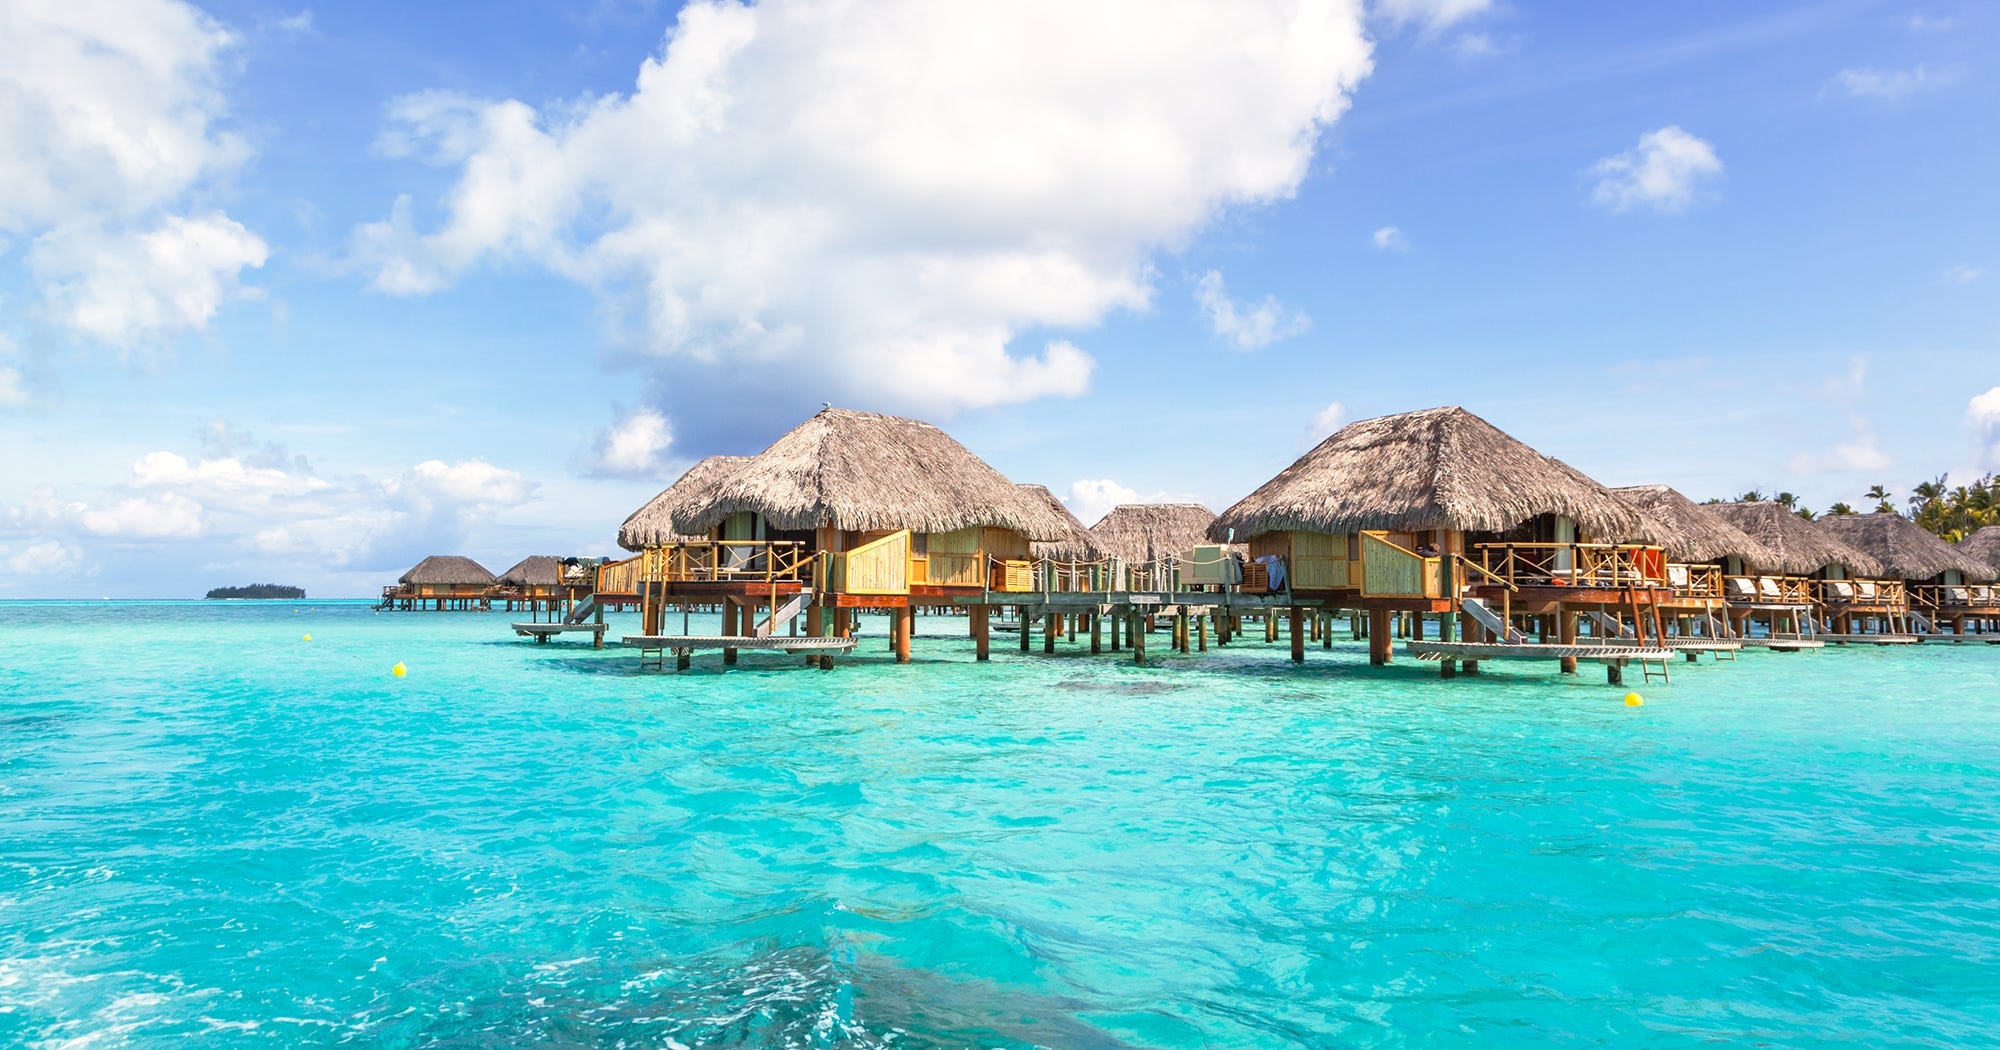 Best Overwater Bungalows You Can Afford On Airbnb 2019